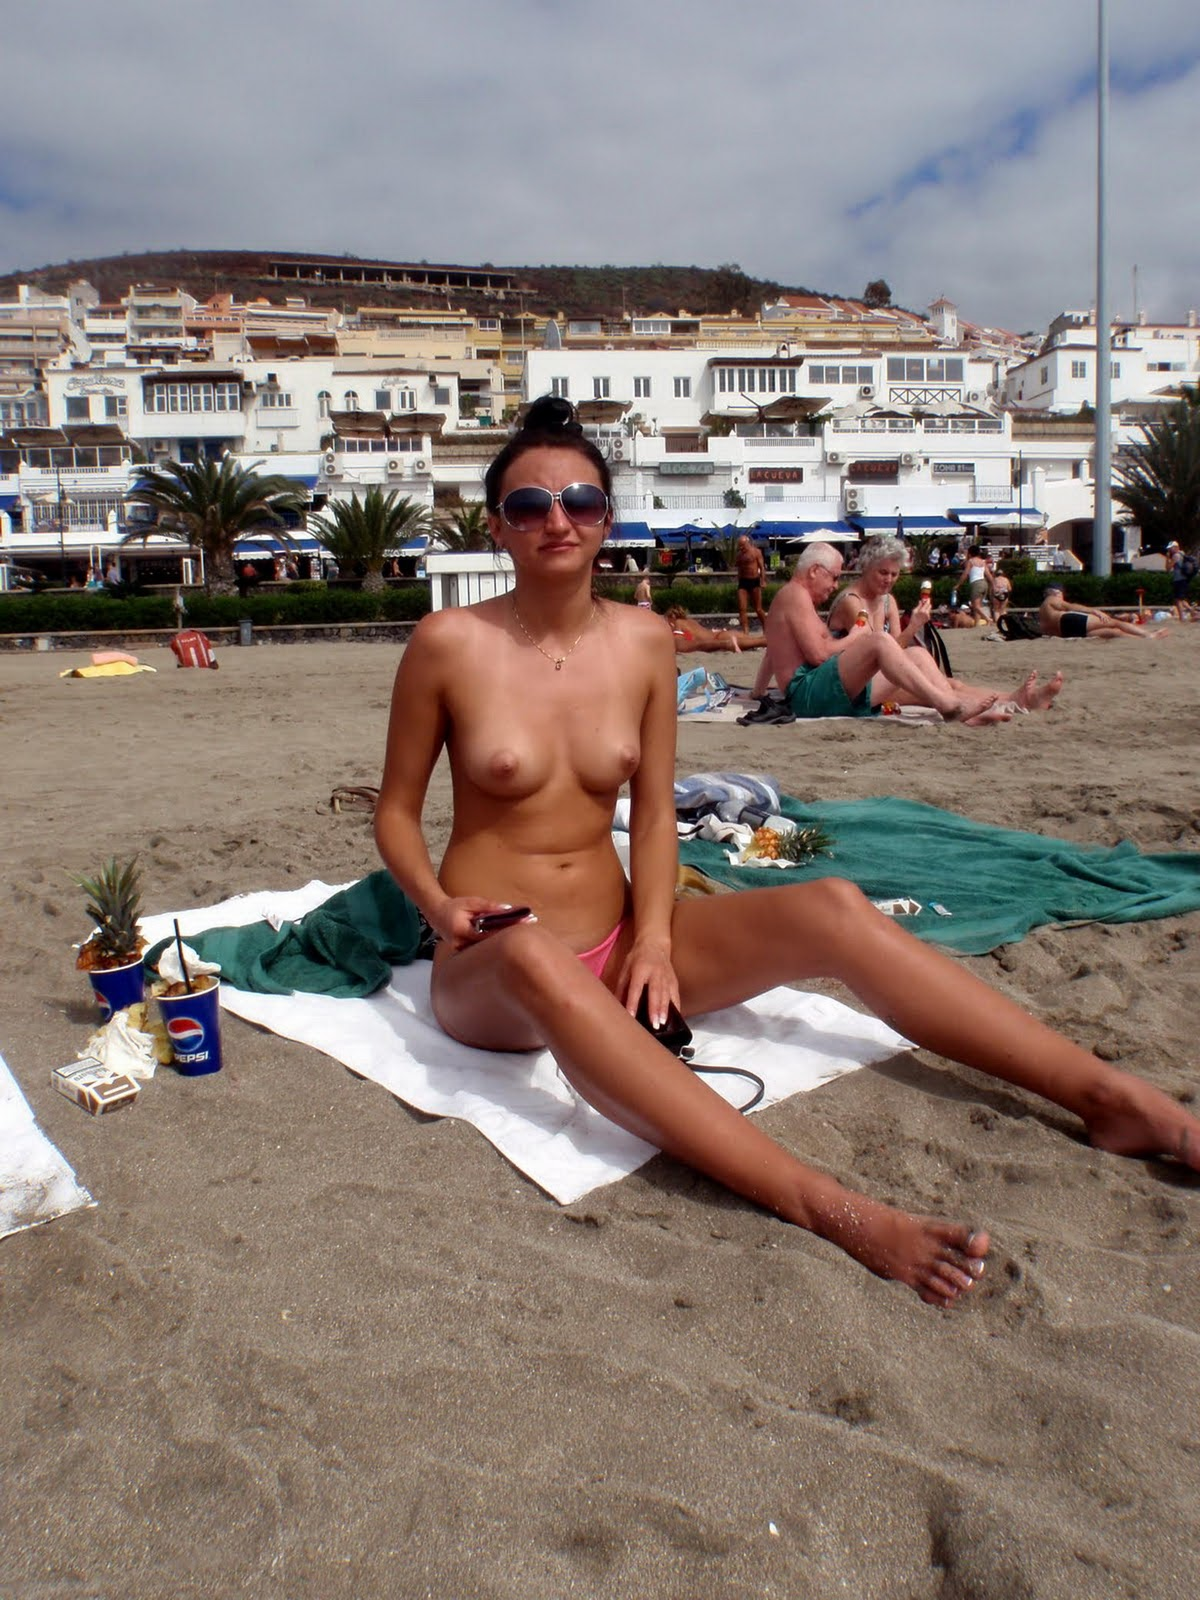 Sexy European Brunette Topless On Vacation At The Beach -1860